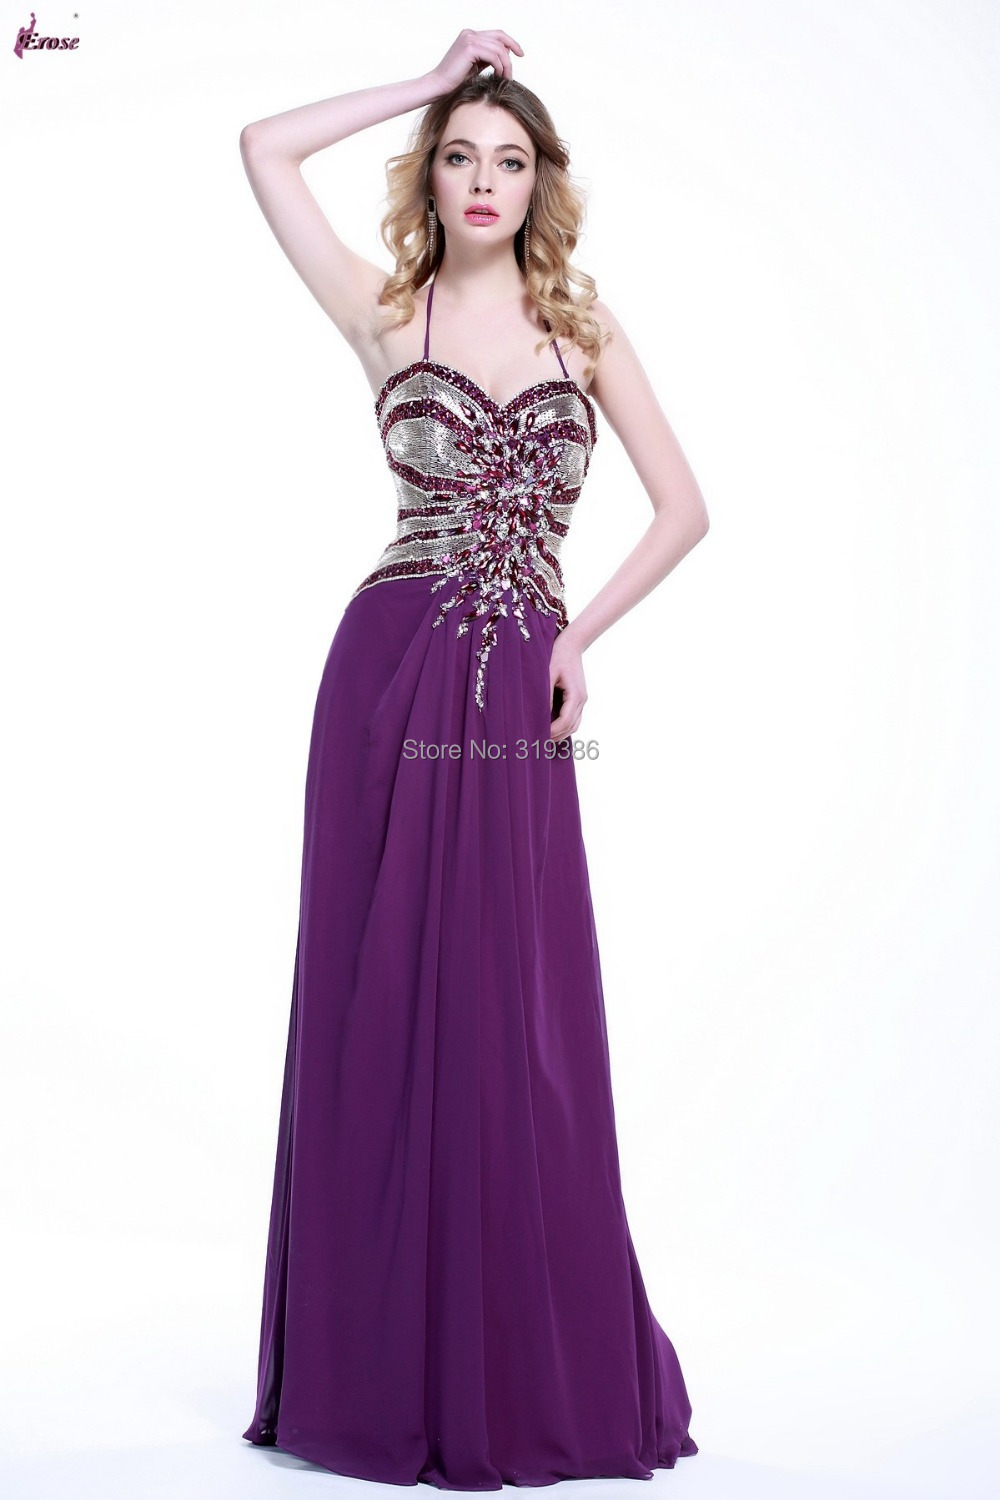 SBS2078 Beaded Bodice Long Purple Prom Dresses Real Gown 2015 Shiny Sequins Top Party Dress(China (Mainland))